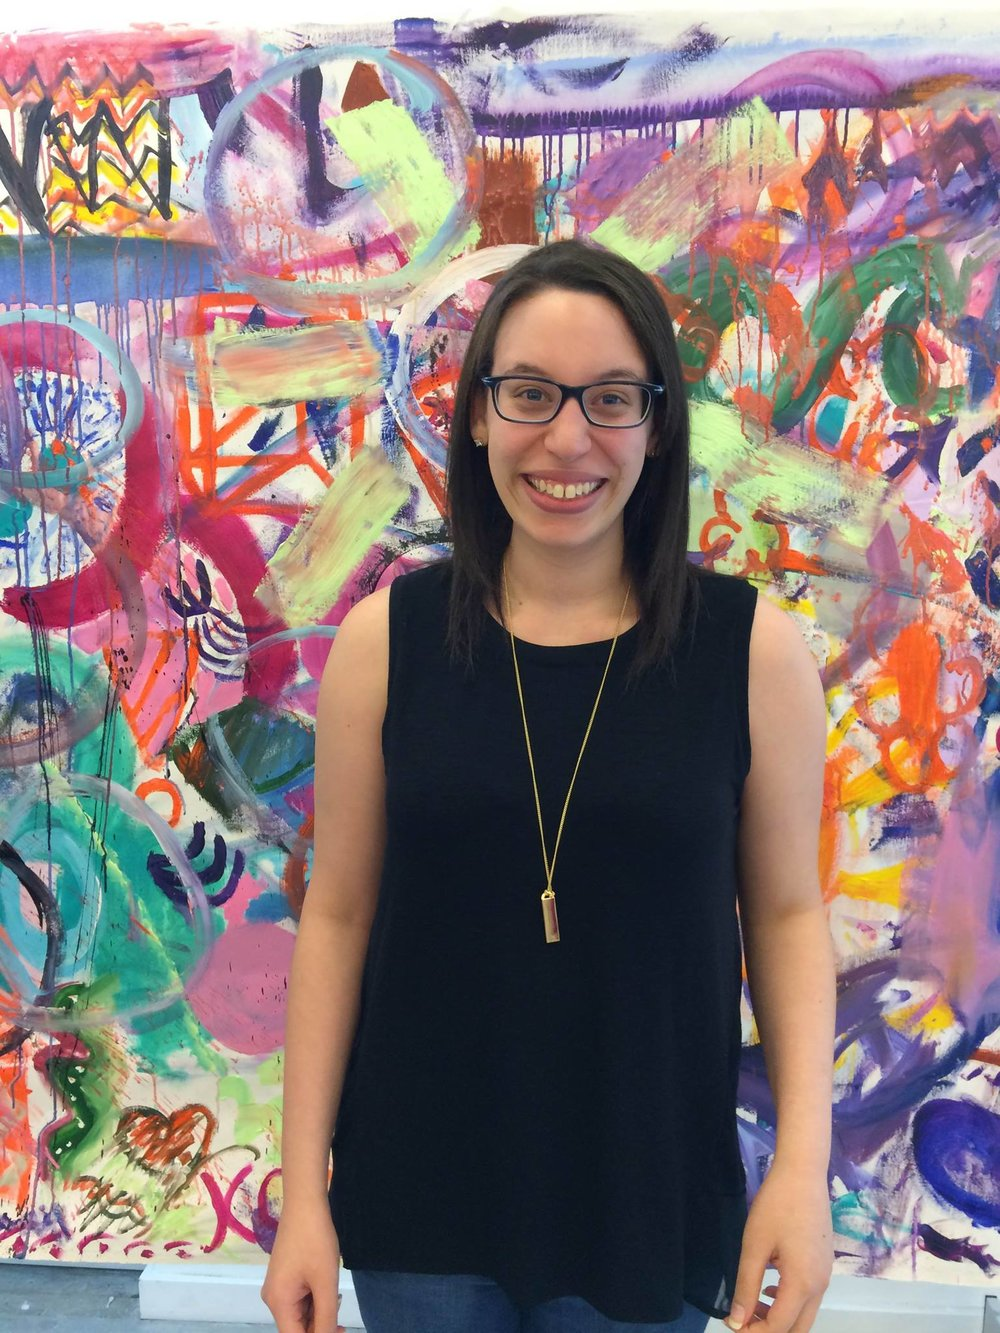 Guest Post by Jackie Saumell    Jackie is a lifestyle and fashion blogger who spends her time between New York City and New Jersey. When she's not writing, she loves to travel, explore new shops and of course, find a good bargain. Catch her writings on The Knot, Jane Summers and  StylisticReaction.com .